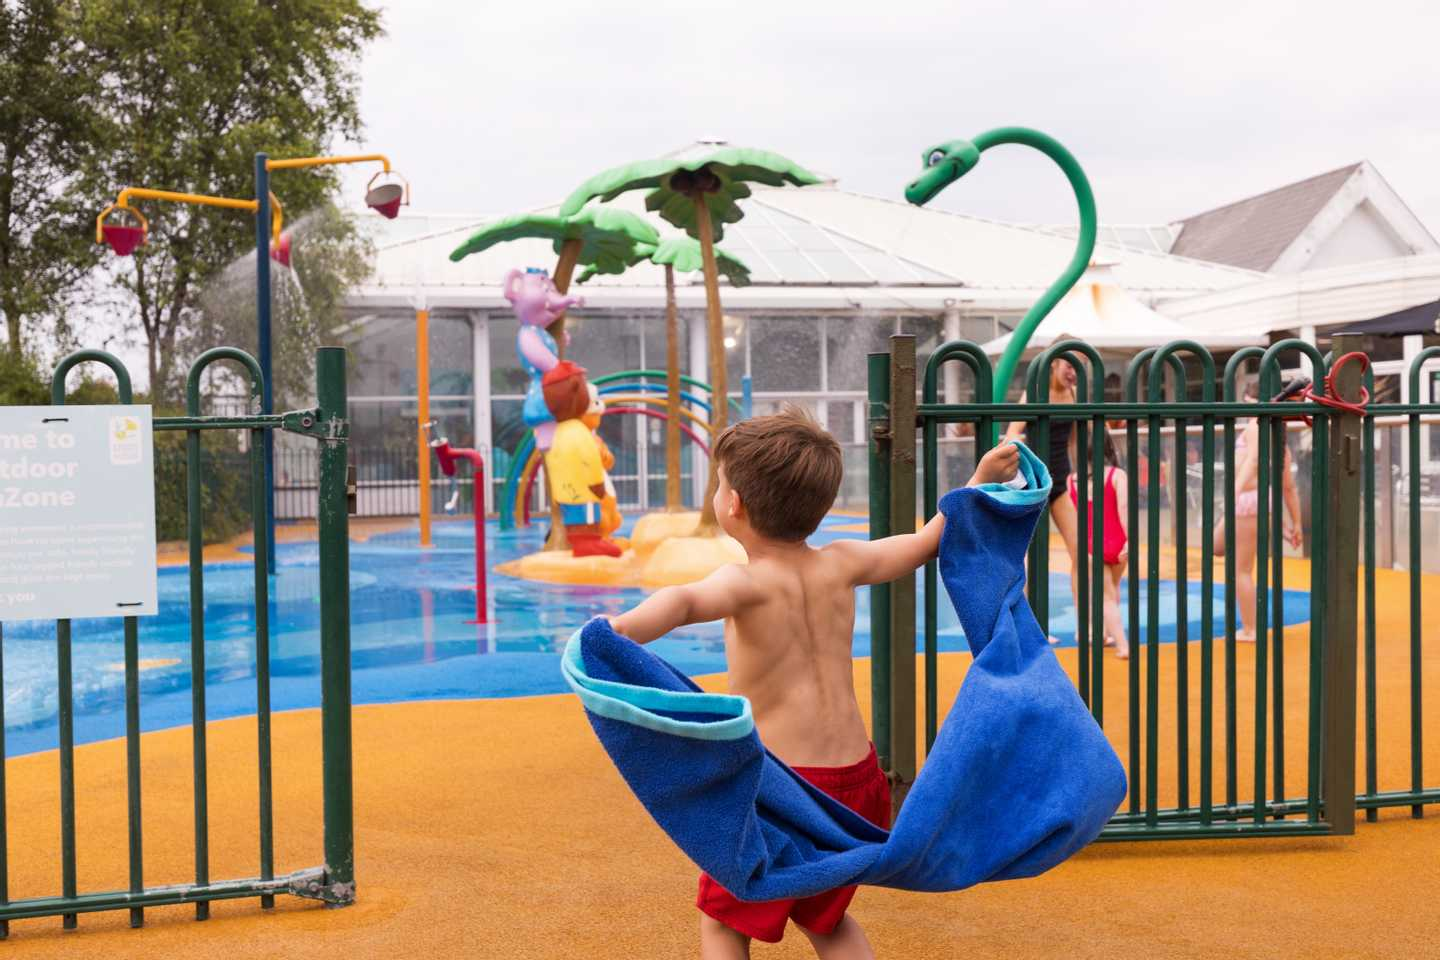 A child running towards the SplashZone with a towel